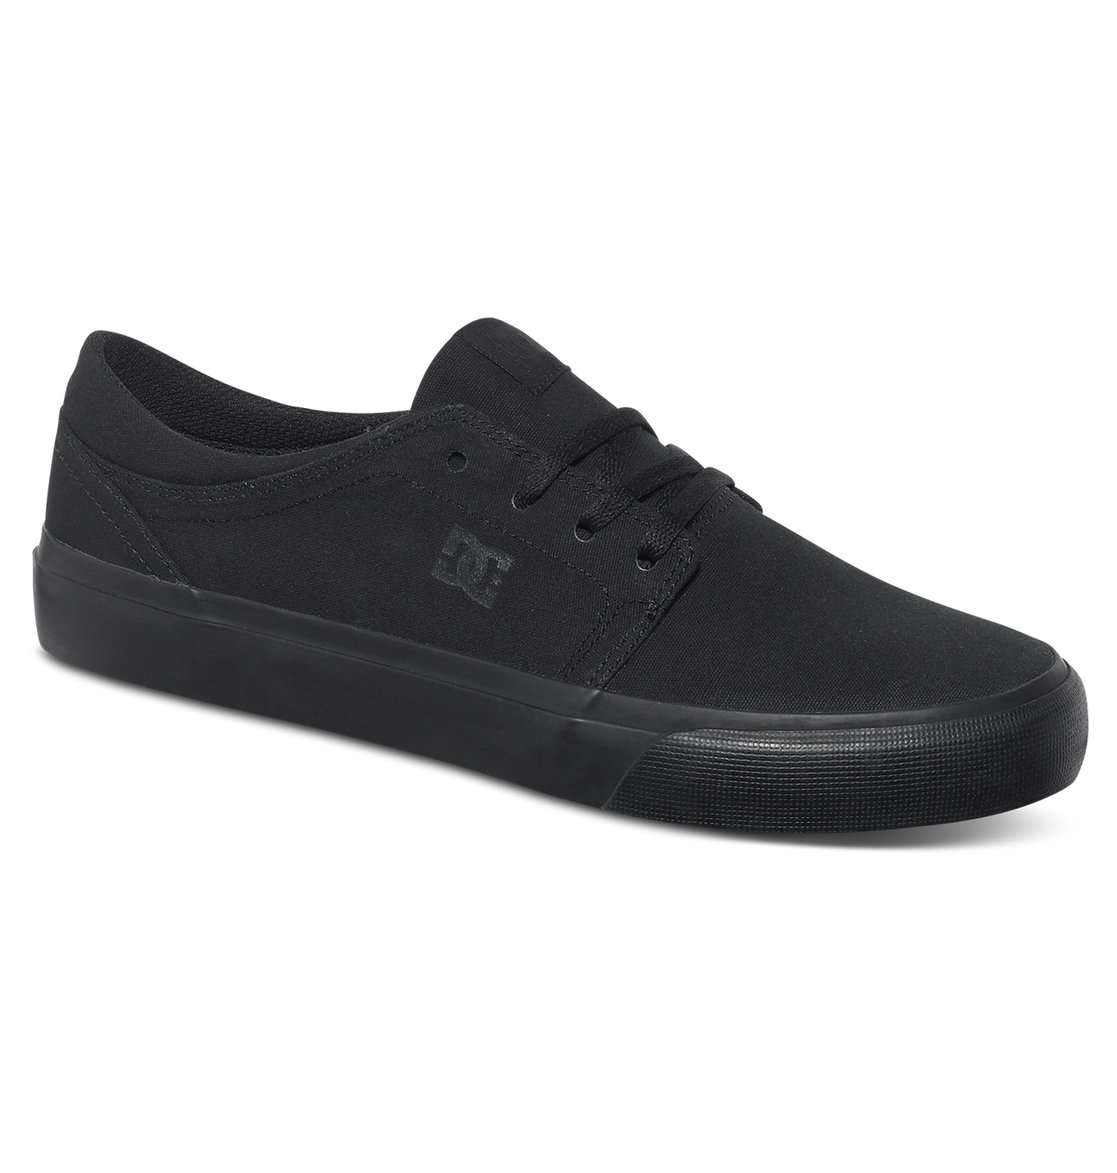 d3eaa0f8478ccc 1 Trase TX Shoes Black ADYS300126 DC Shoes